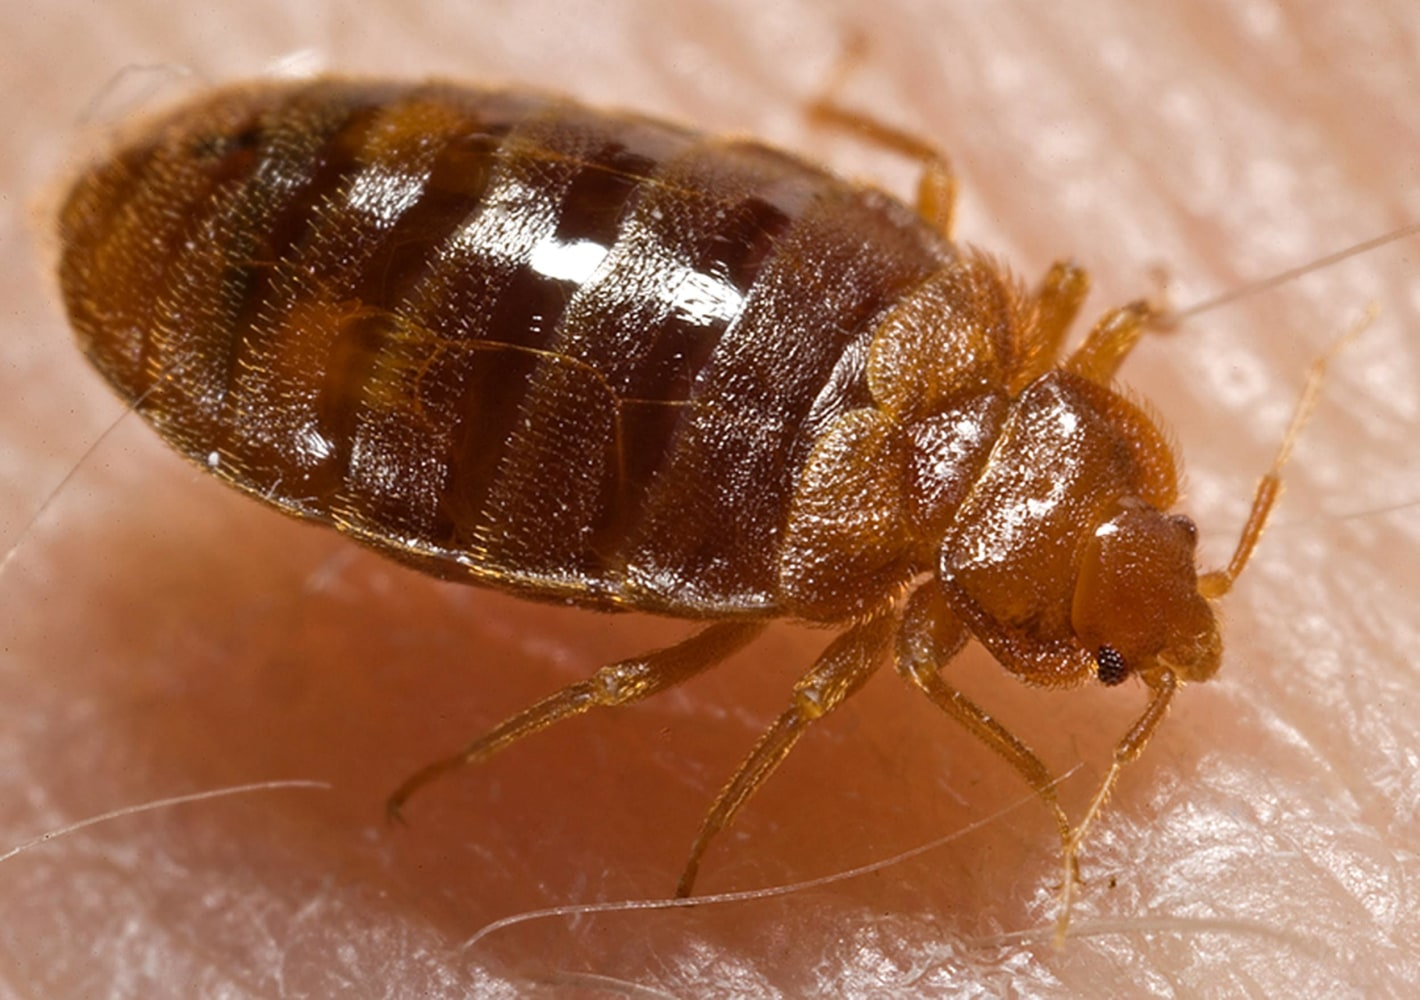 Apartment Building Has Bed Bugs bed bugs bite: budget apartments loaded, study finds - nbc news